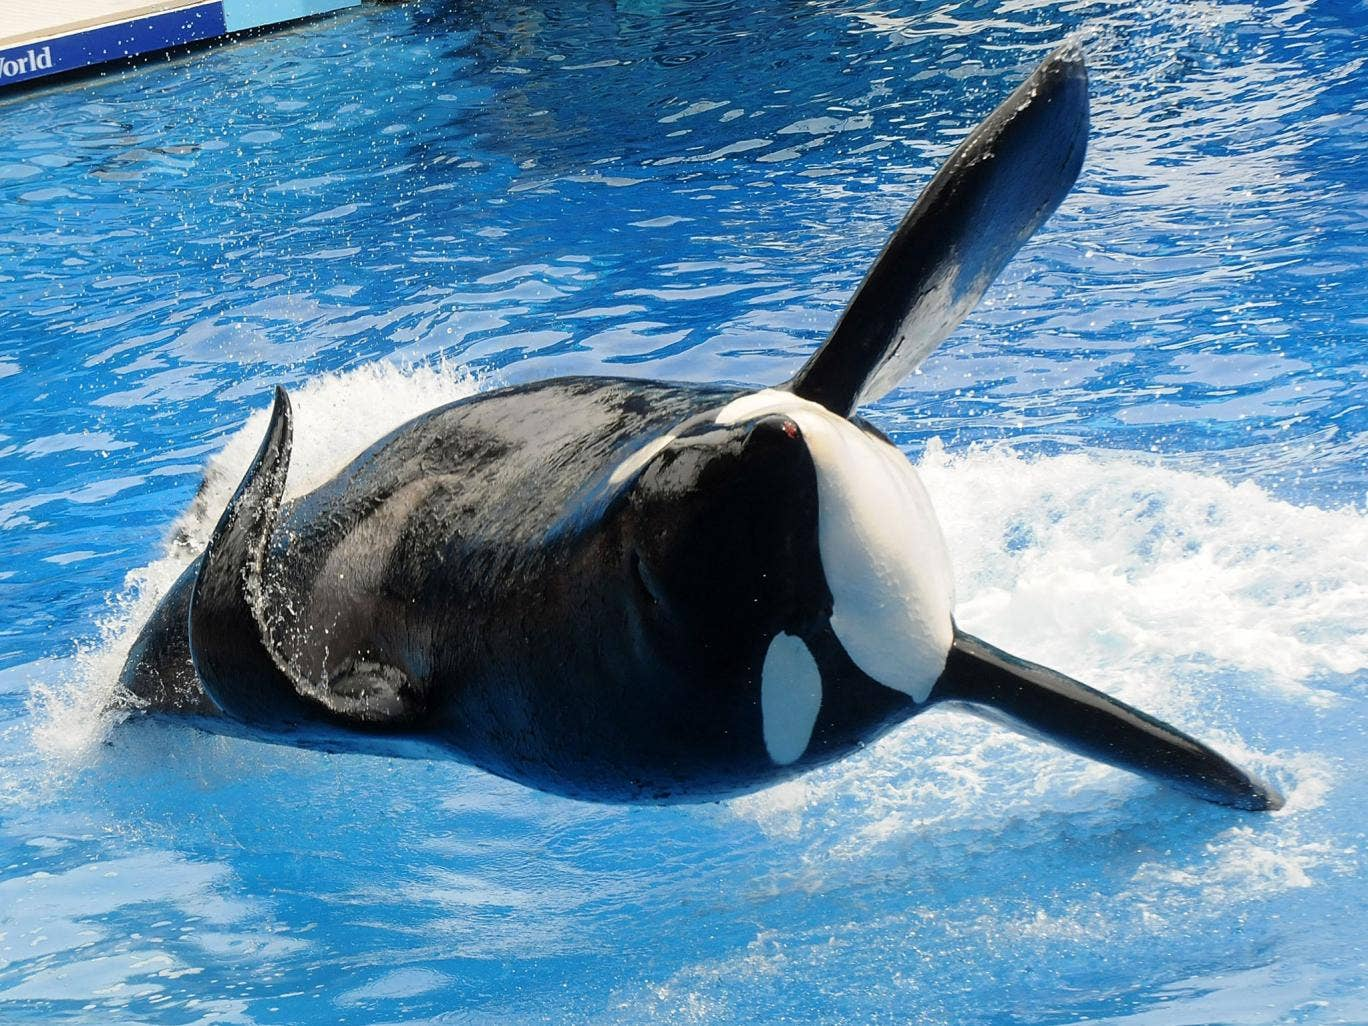 Killer whale 'Tilikum' appears during a performance in his show 'Believe' at Sea World in Orlando, Florida. Tilikum has been involved in the deaths of three people during his time in captivity since 1991